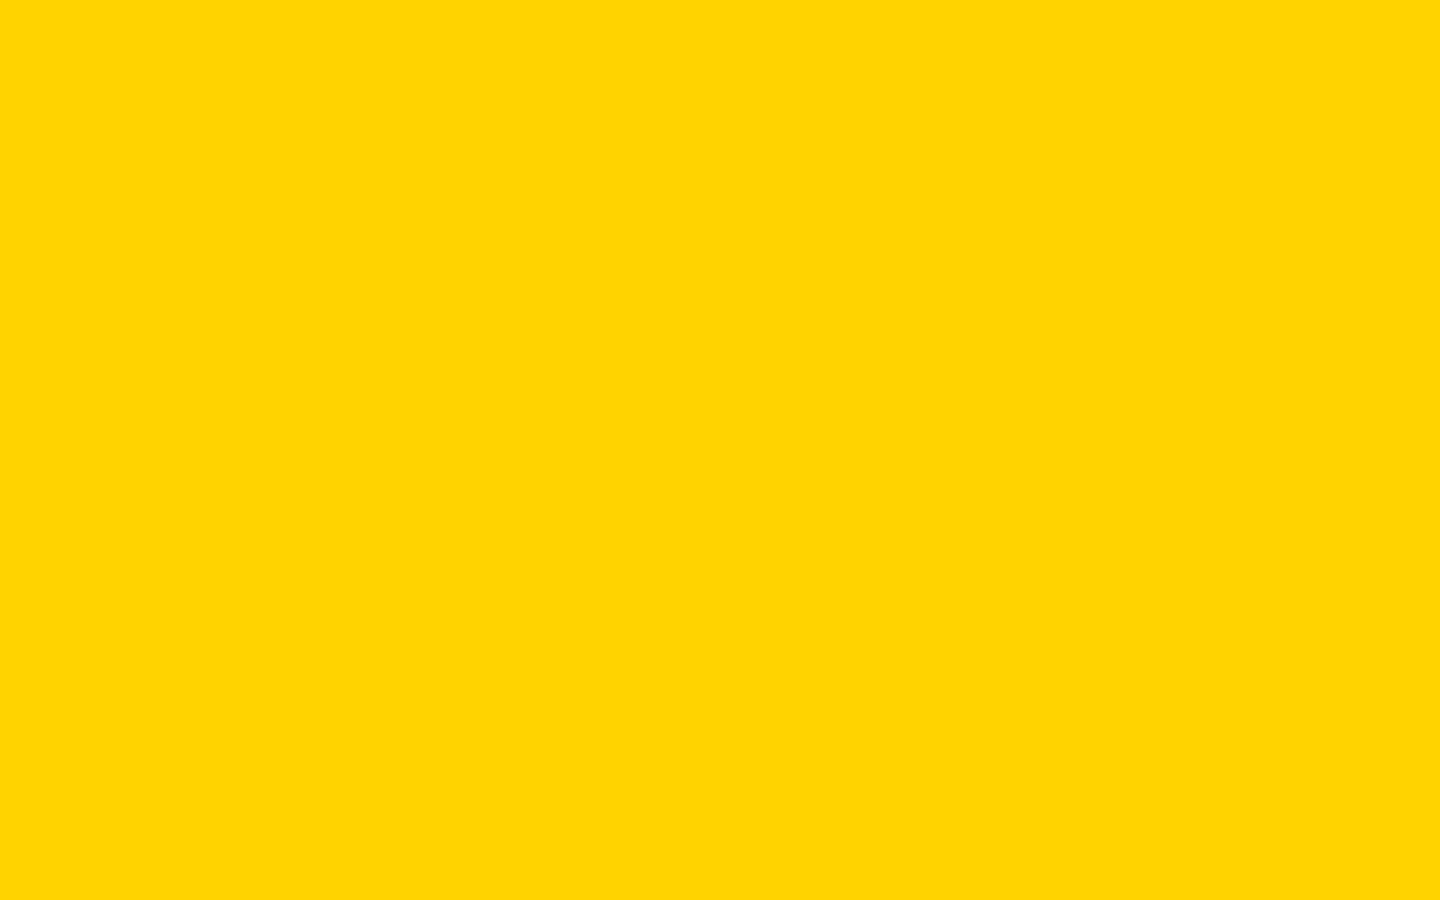 1440x900 Yellow NCS Solid Color Background